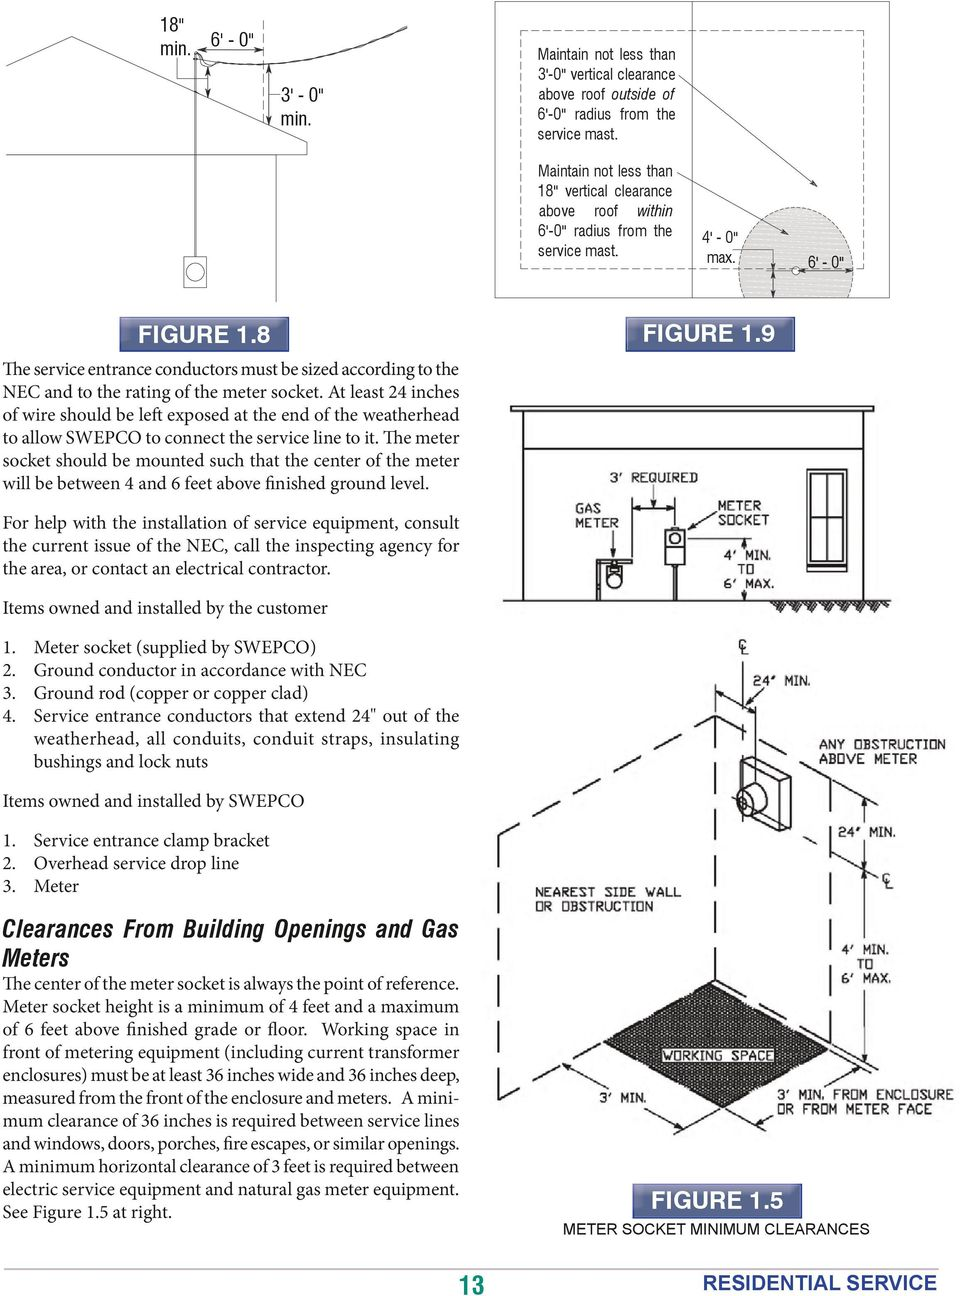 Unique 4 Wire Service Entrance Wiring Crest - Electrical Diagram ...